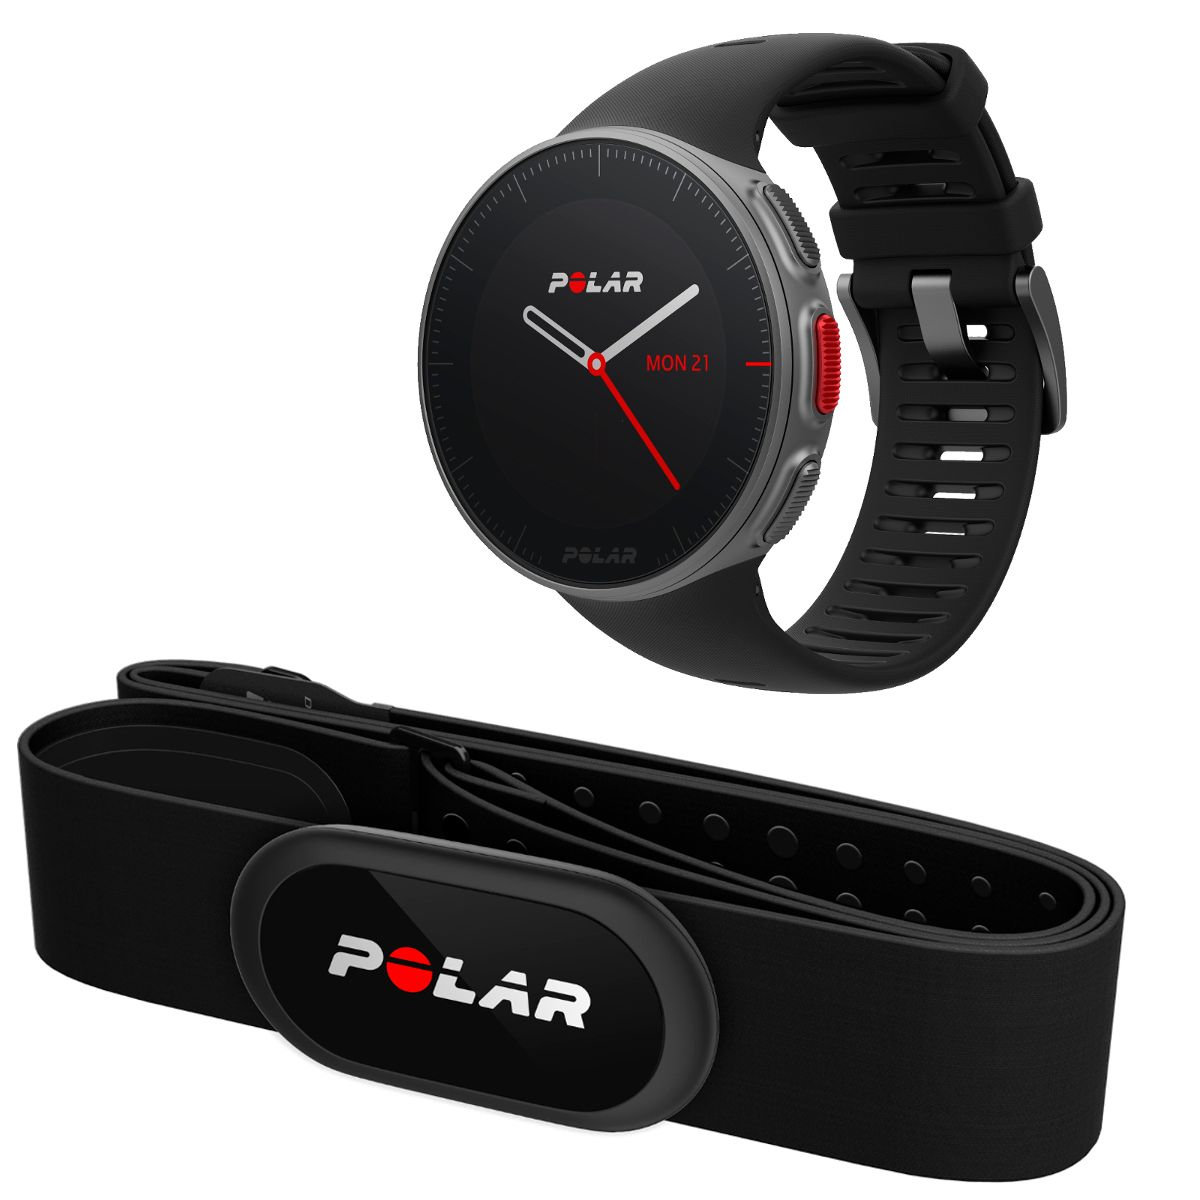 Polar Vantage V GPS watch for multisport and triathlon training with H10  chest strap